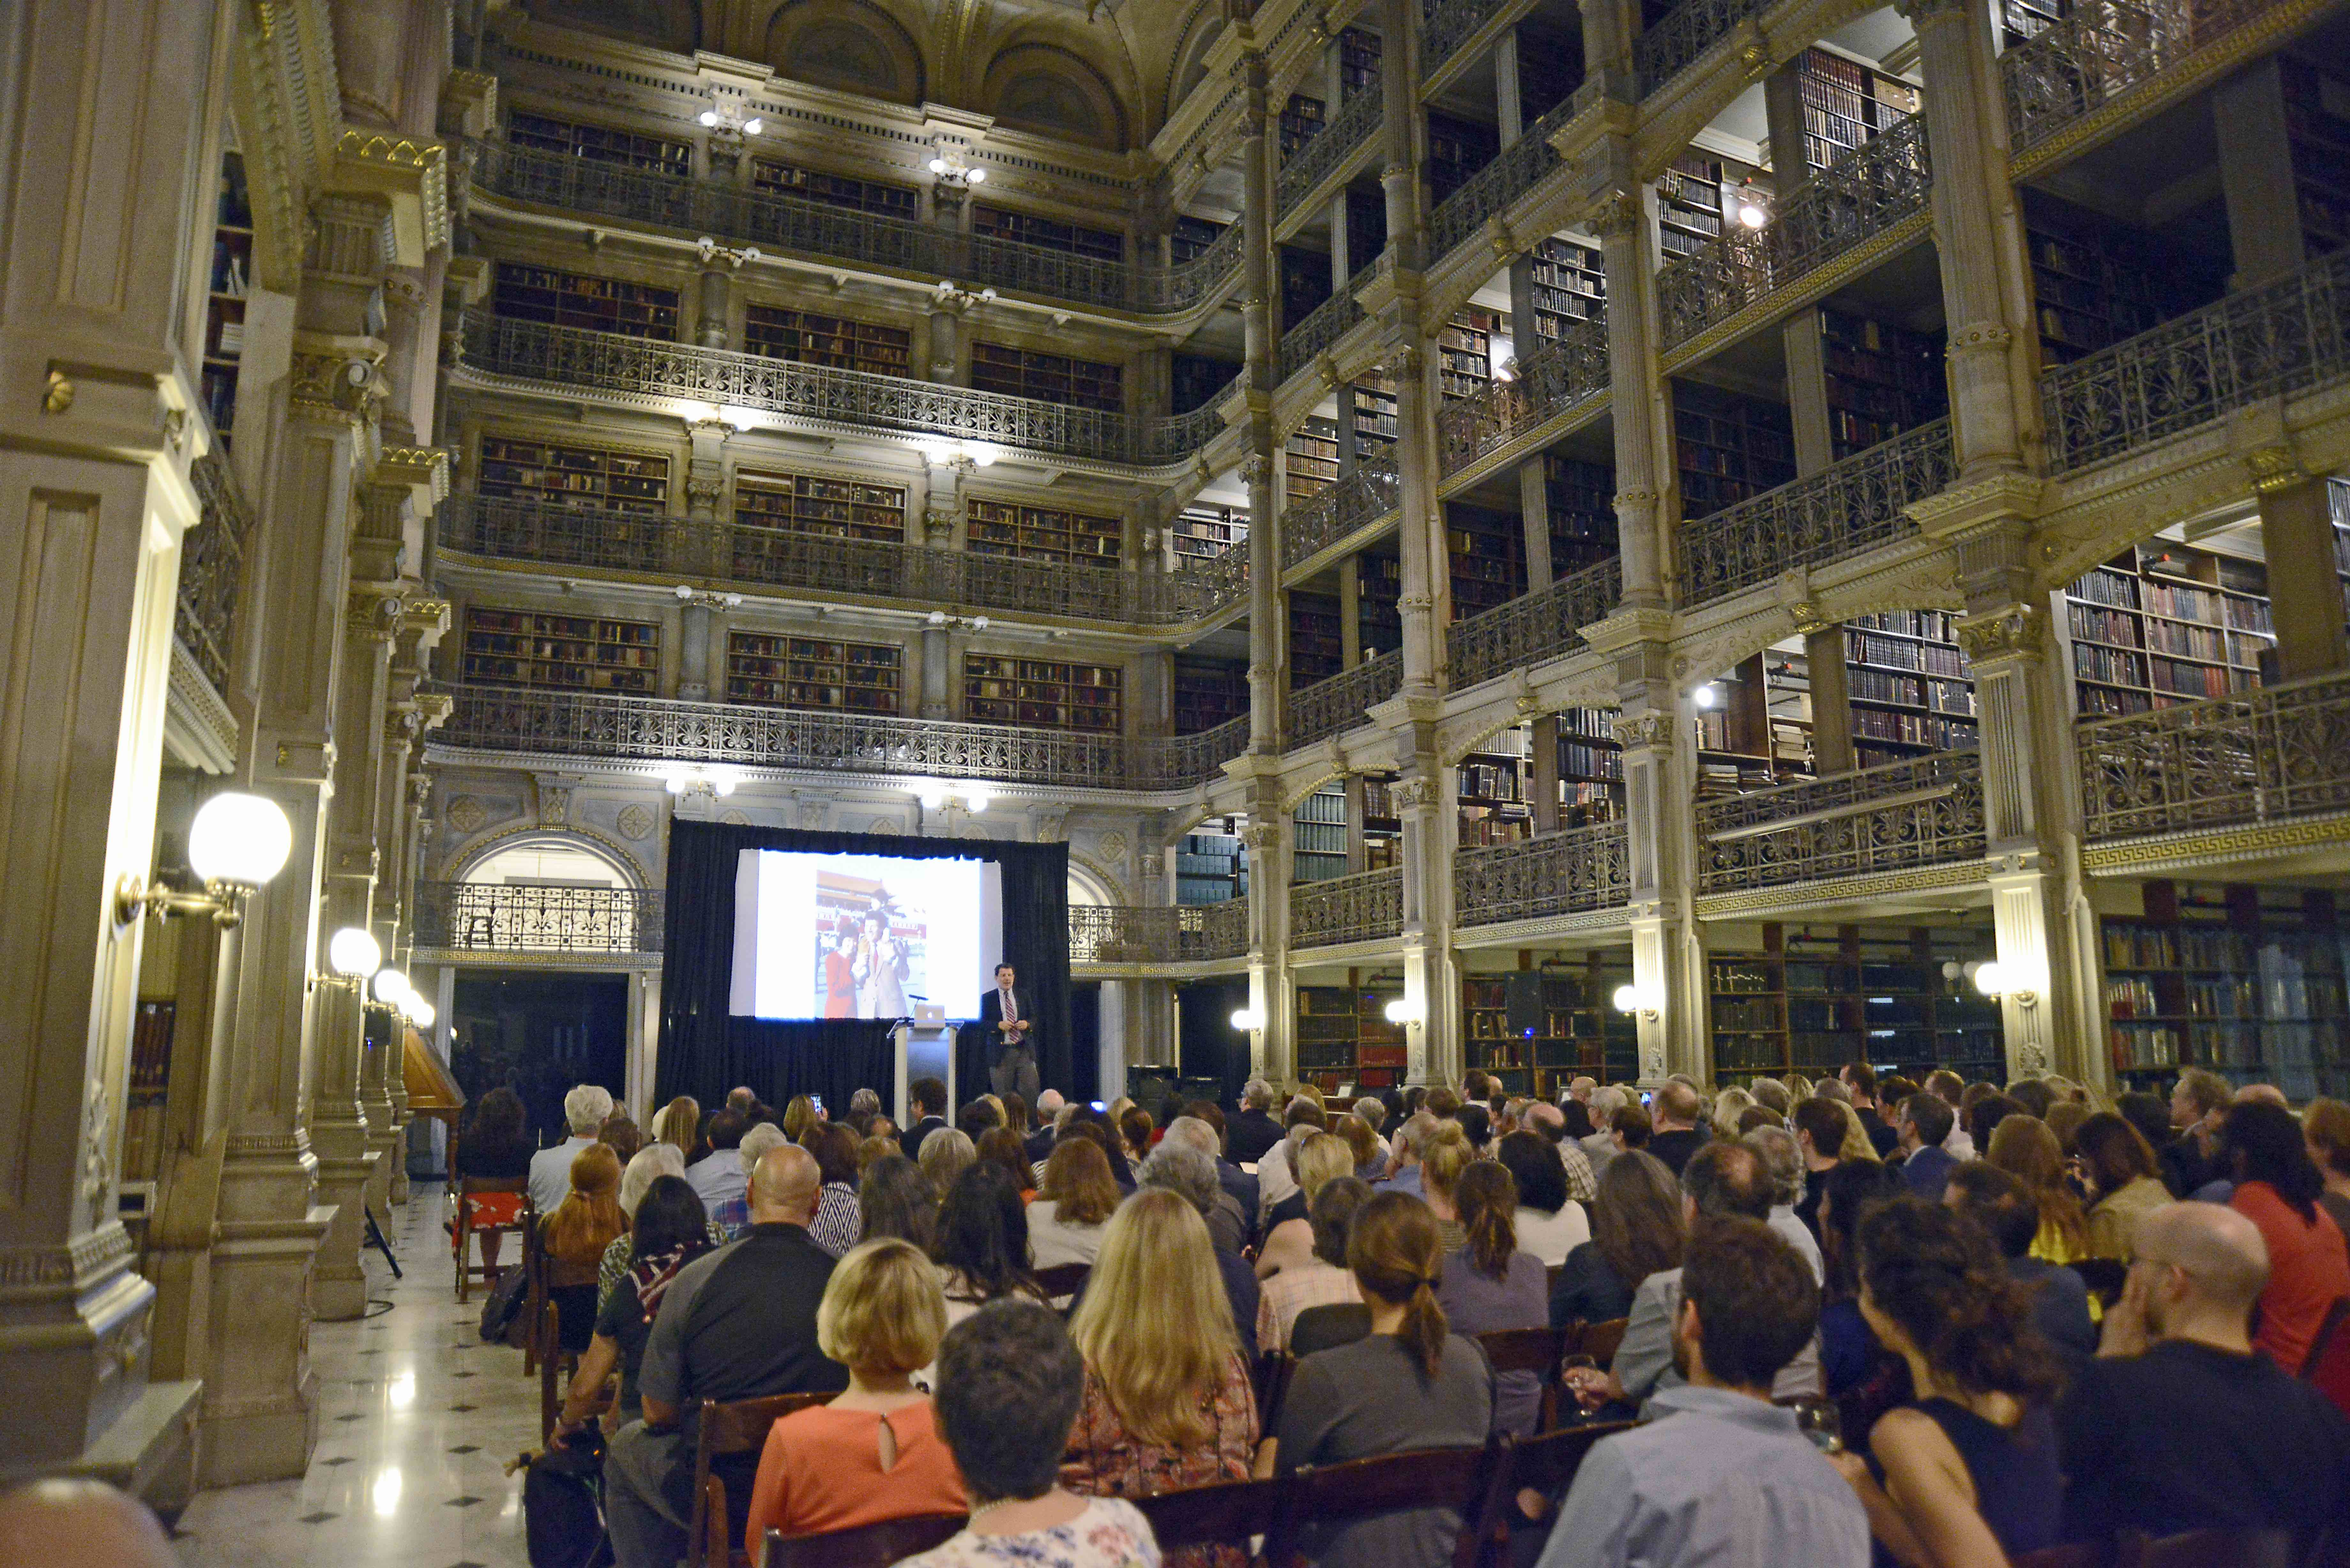 Nicholas Kristof lecture at the George Peabody Library